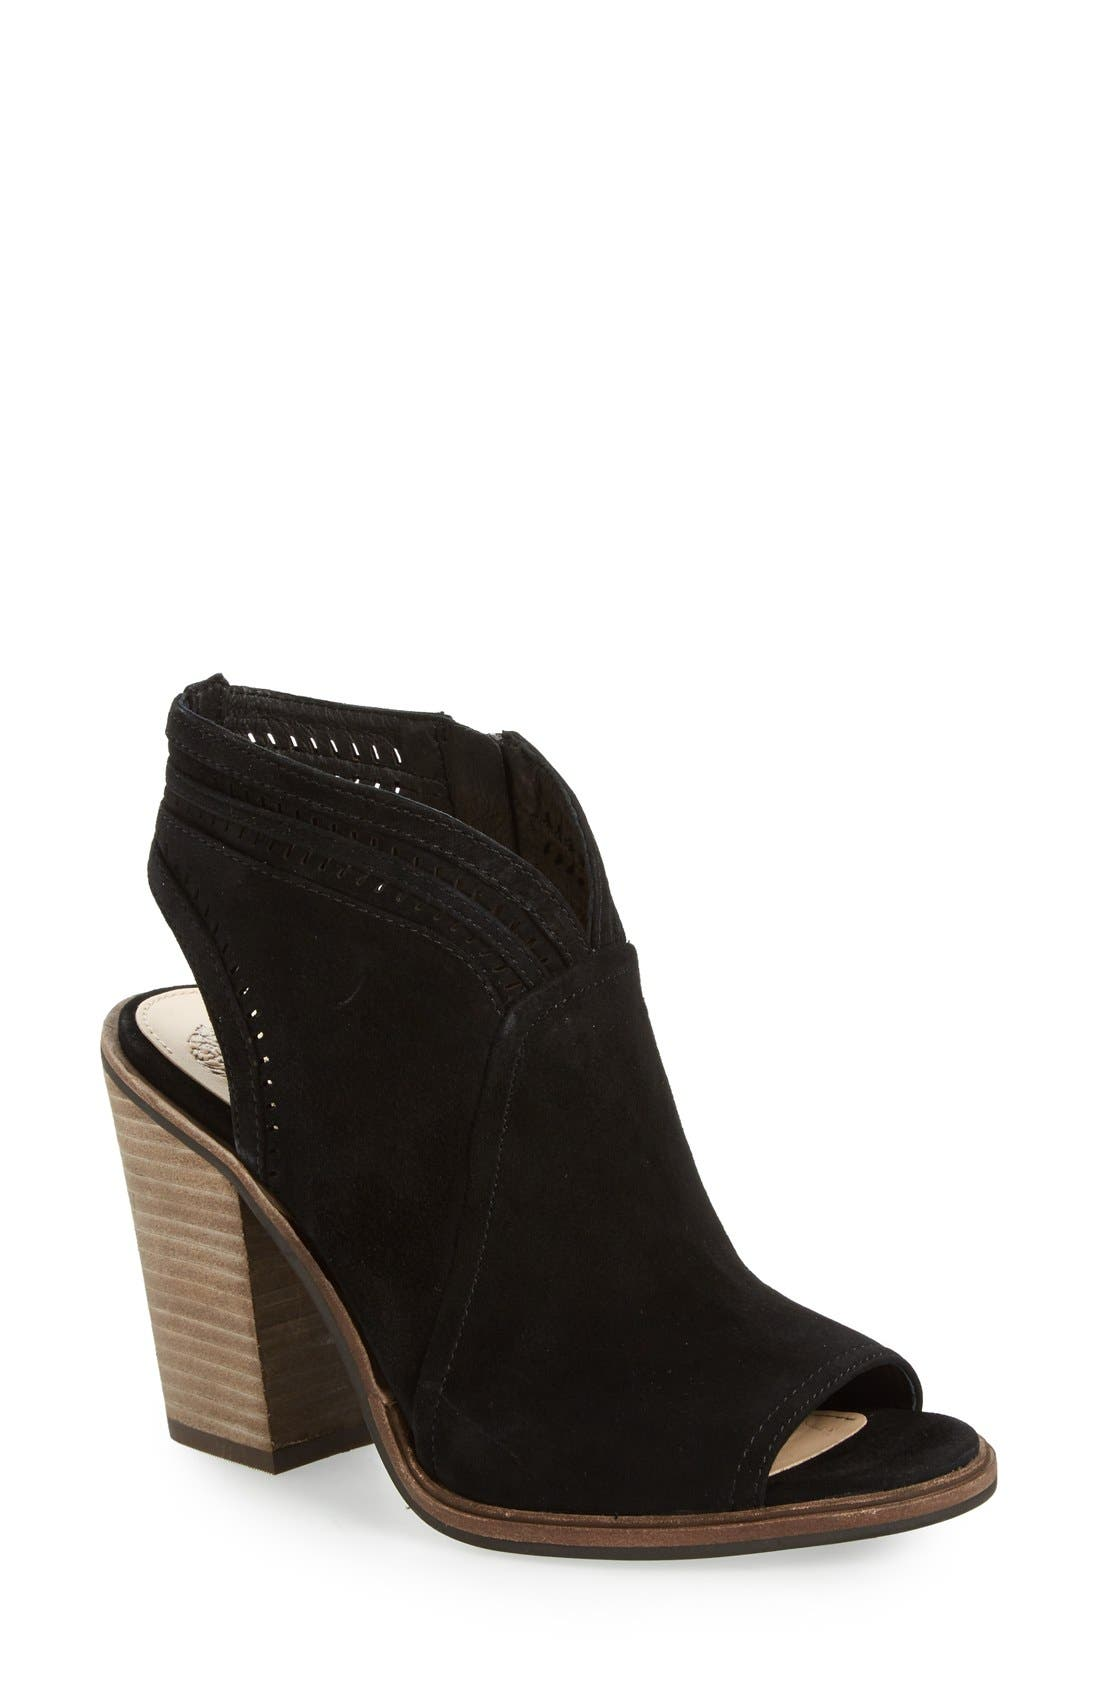 VINCE CAMUTO 'Koral' Perforated Open Toe Bootie, Main, color, 001